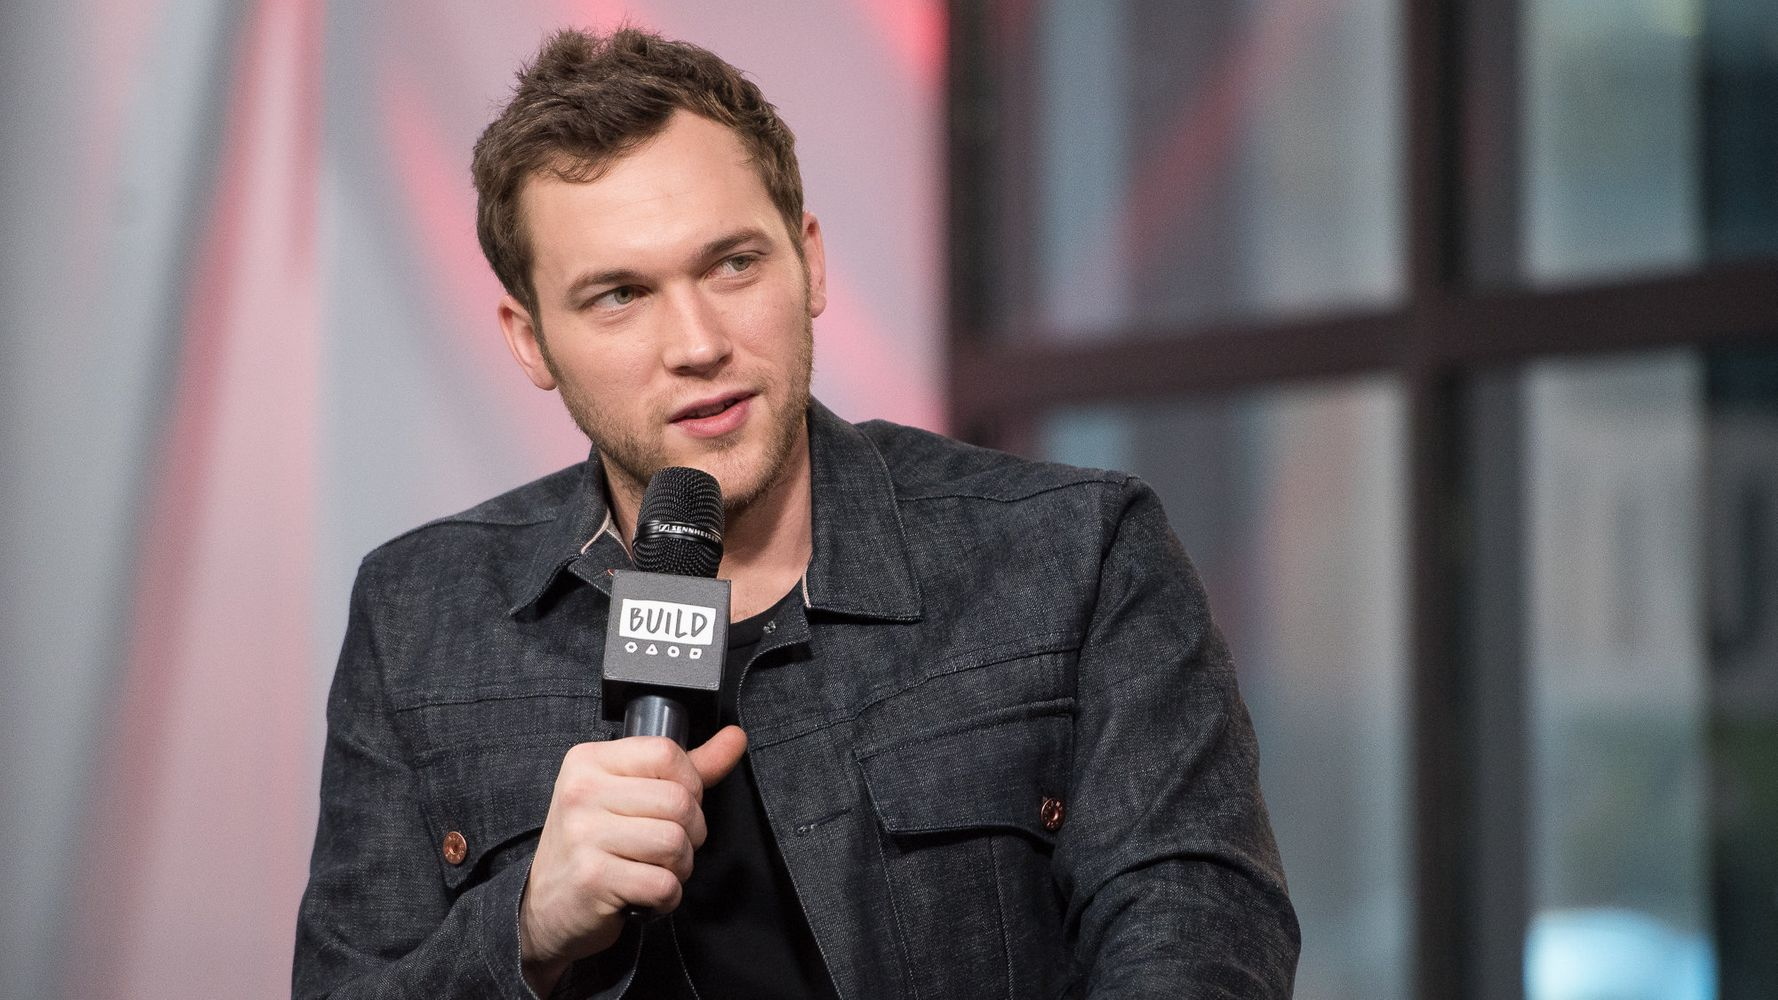 With Lawsuit Behind Him, Phillip Phillips Makes A Big Return | HuffPost